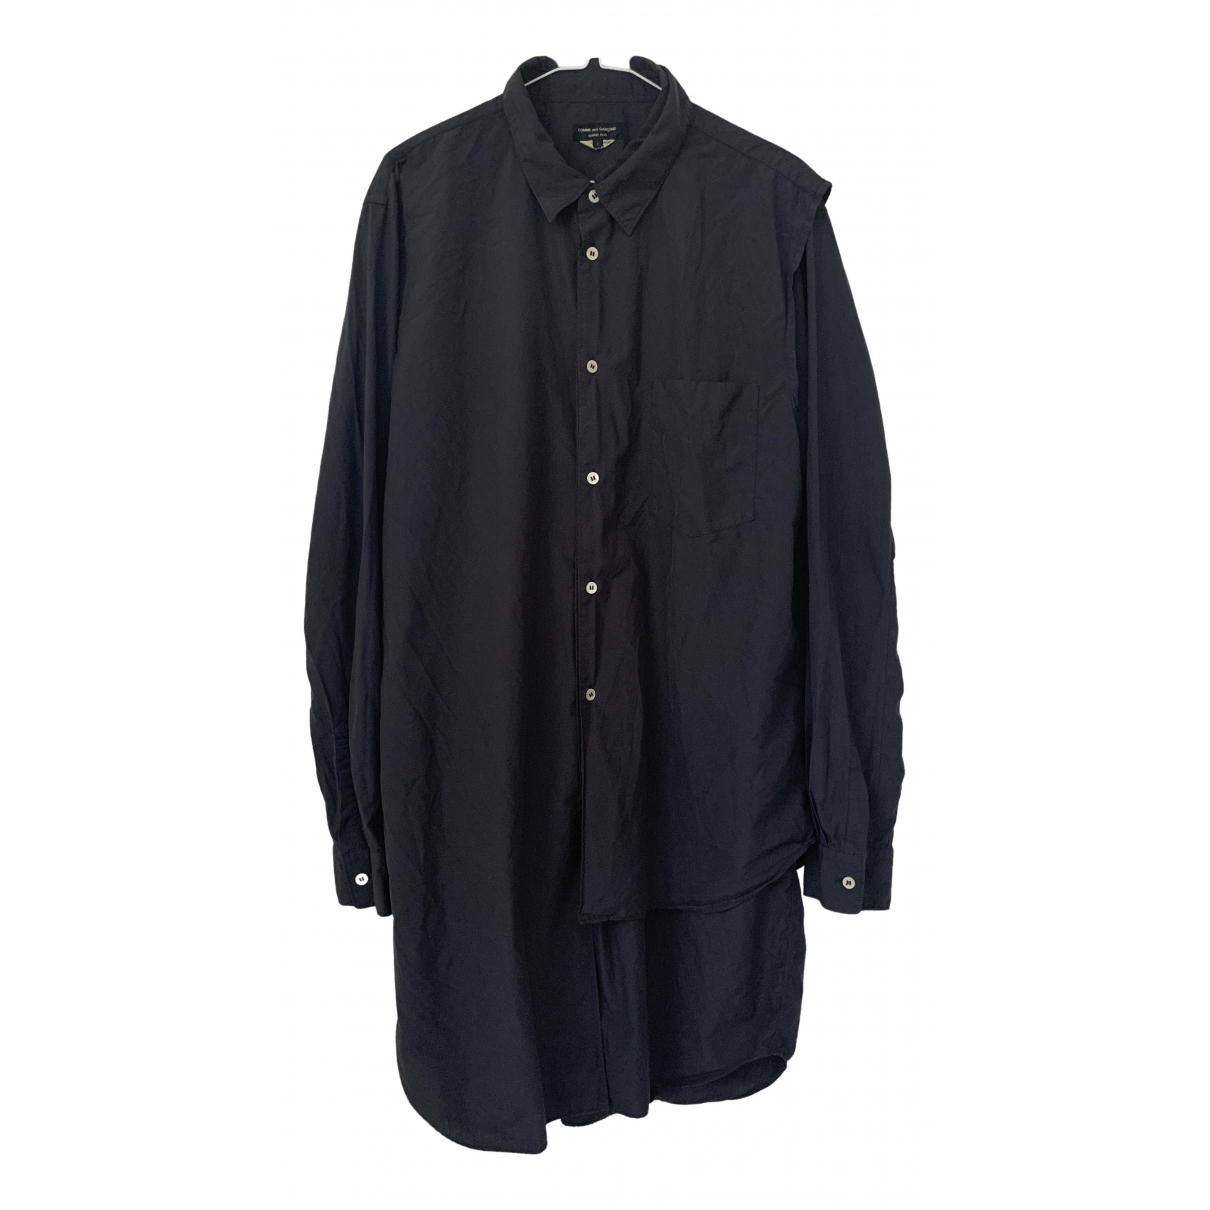 Comme Des Garcons \N Anthracite Shirts for Men L International